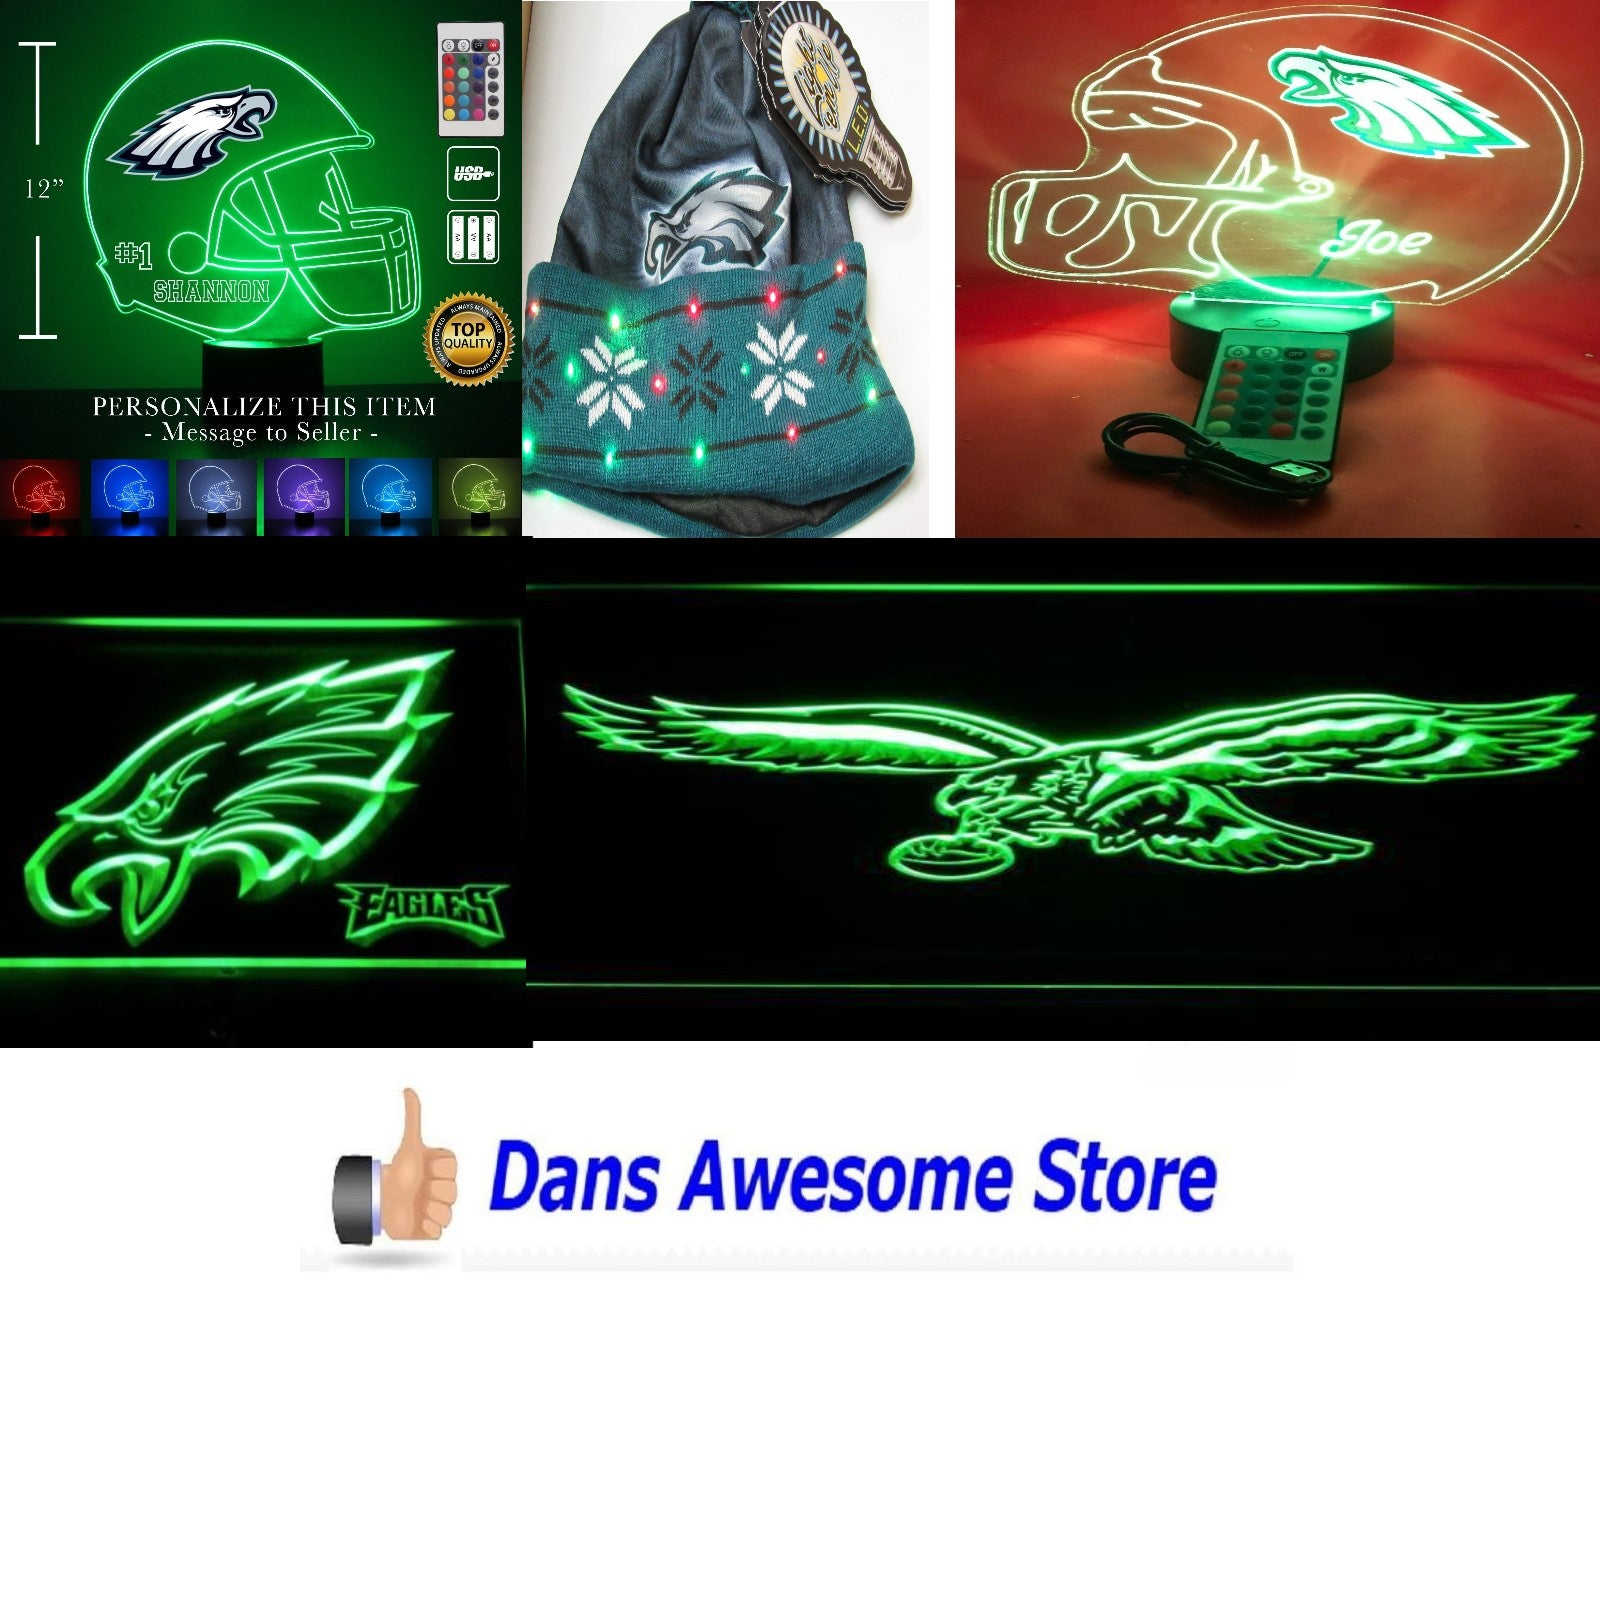 Philadelphia Eagles LED - Dans Awesome Store